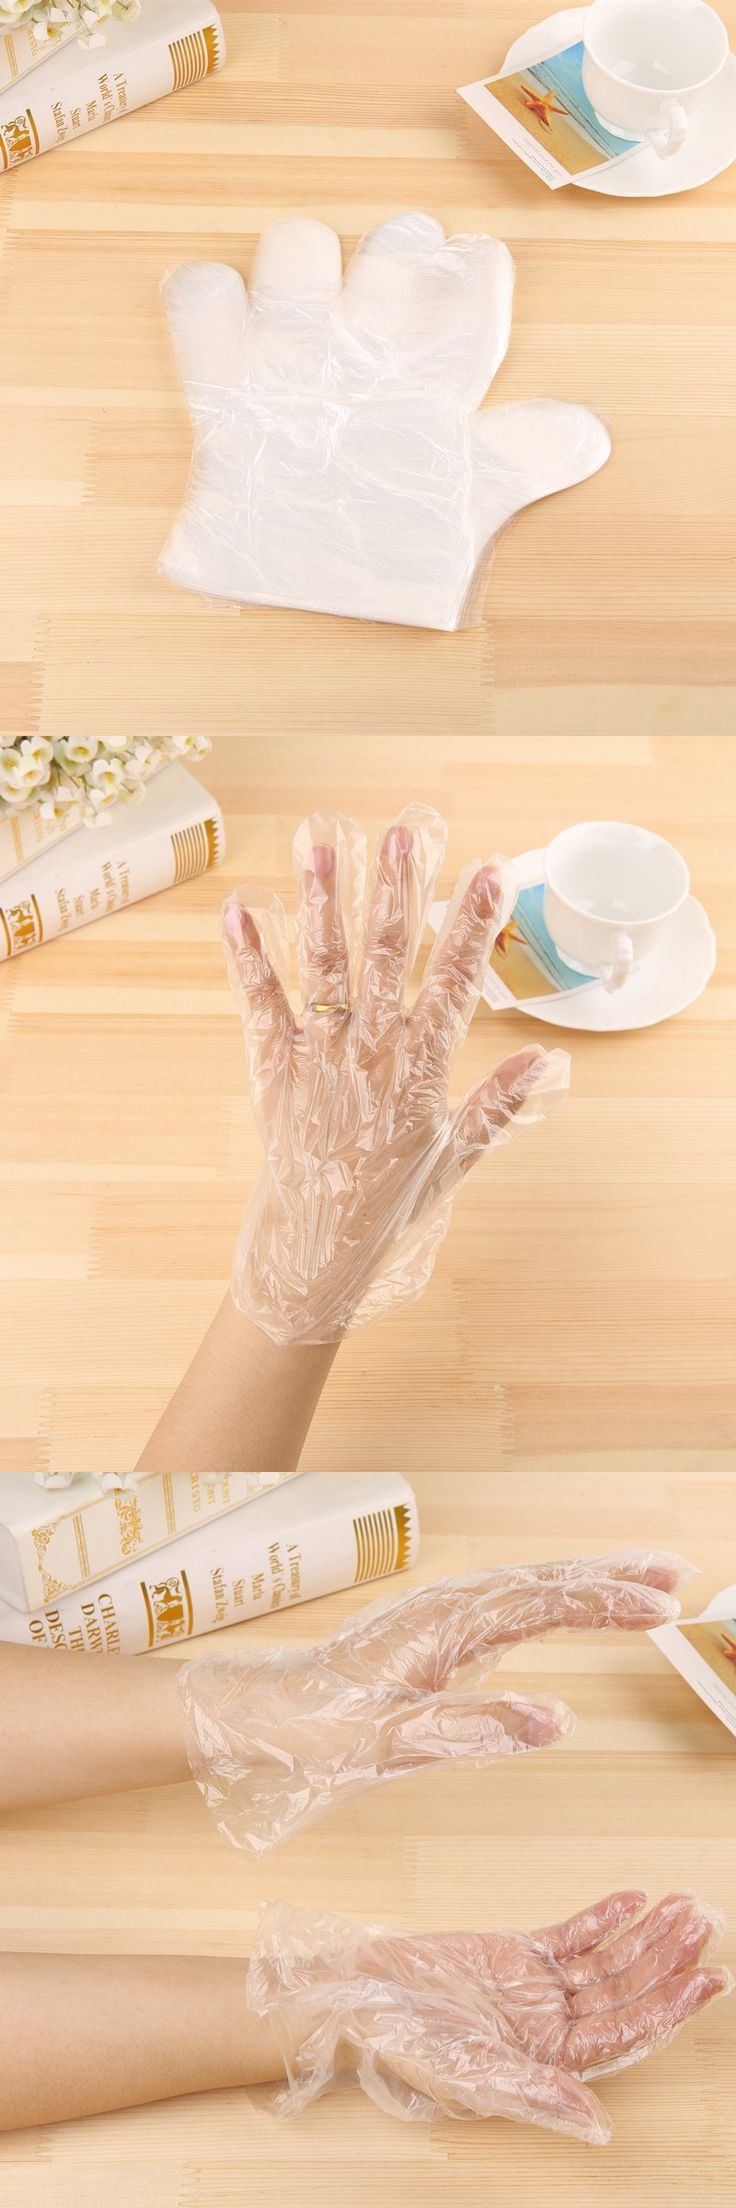 50PCS/LOT Eco-friendly Disposable Gloves PE Garden Household Restaurant BBQ Plastic Multifuctional Gloves Food